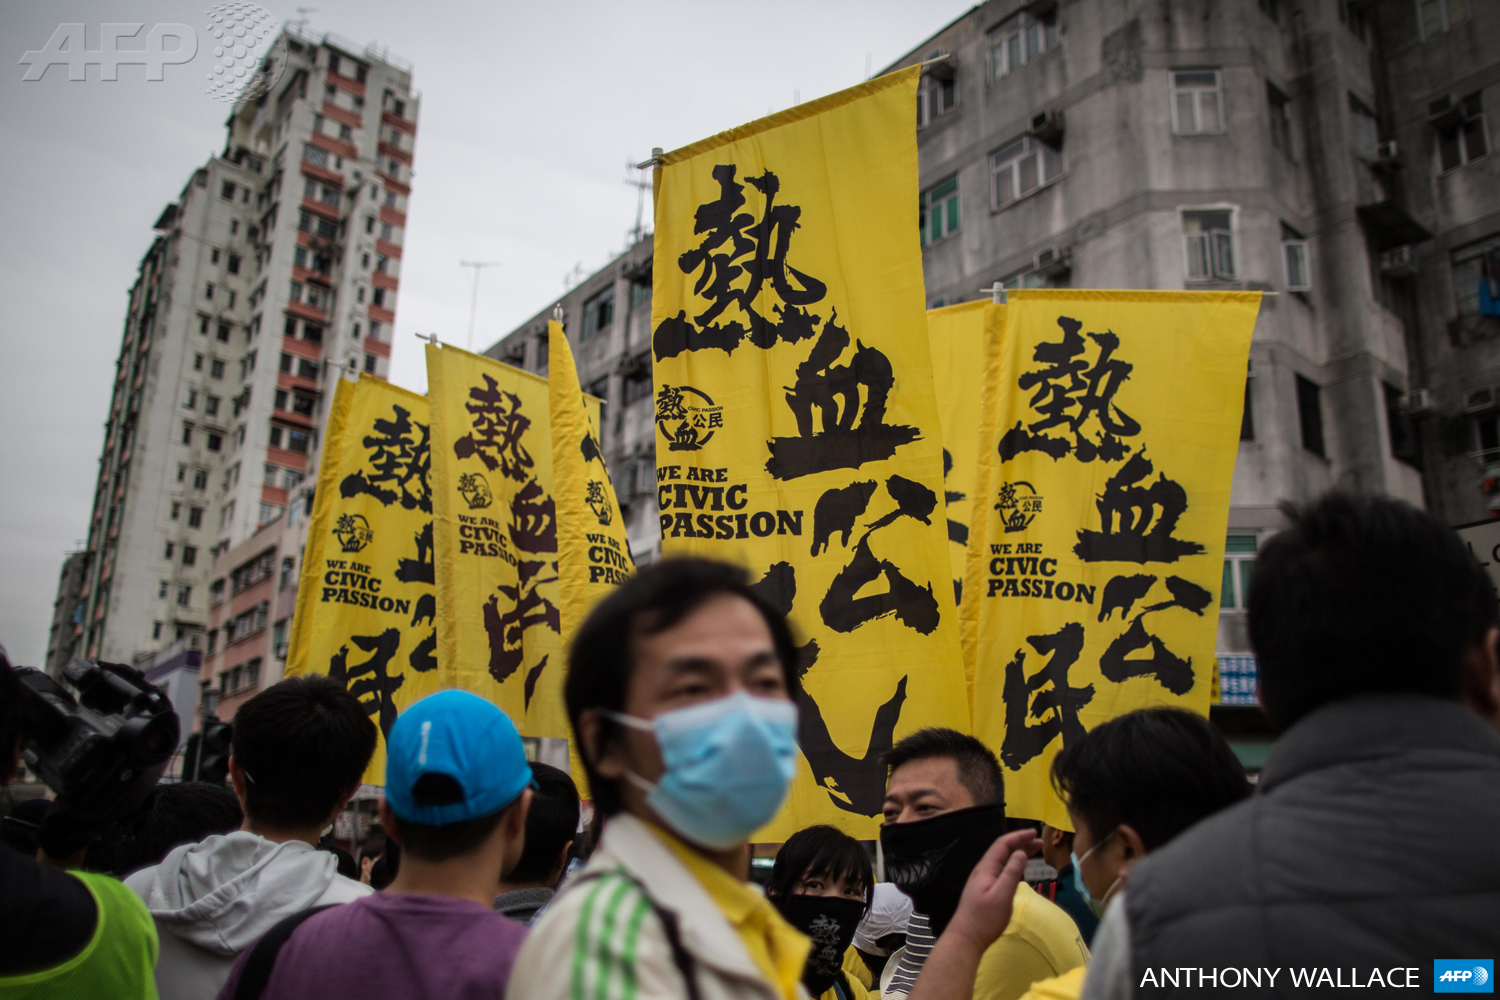 Members of the Civic Passion group hold flags as they attend an anti-parallel trading protest in the Yuen Long district of Hong Kong on March 1, 2015.